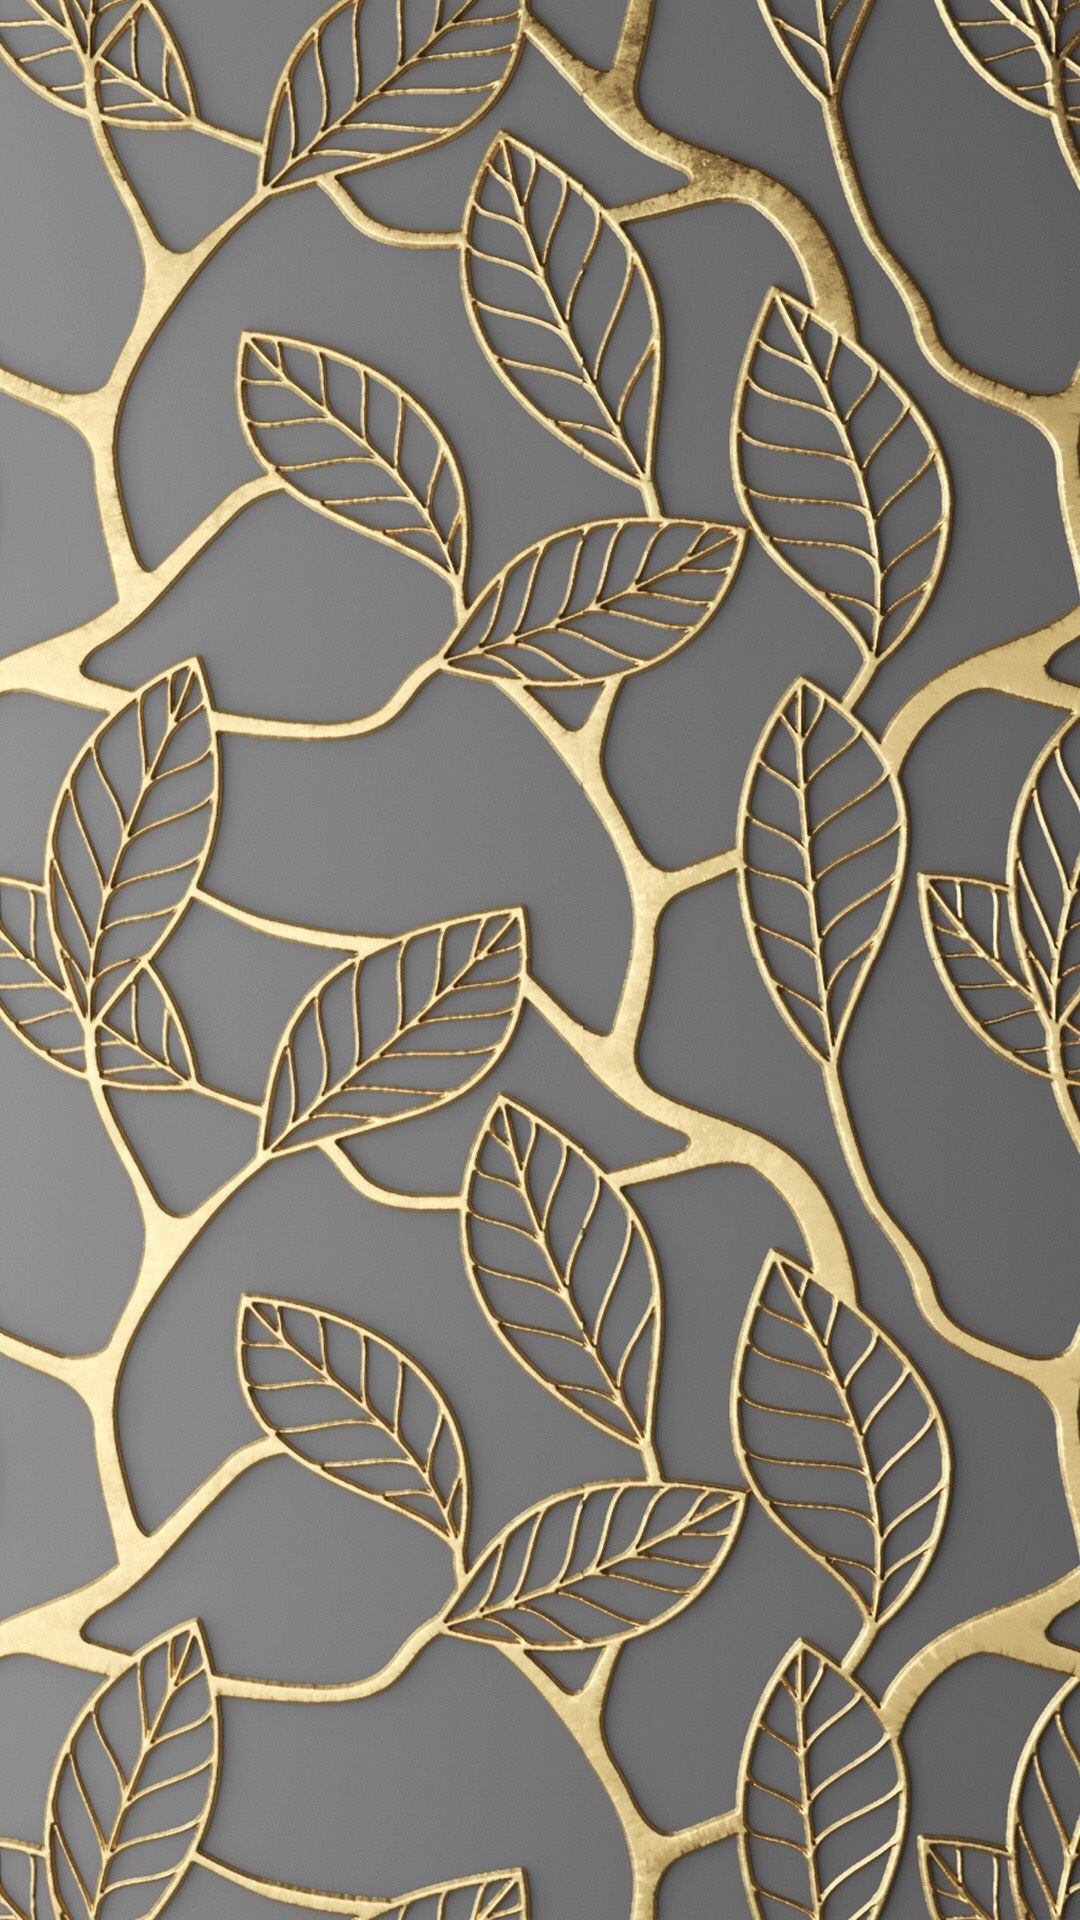 Pin By Ayman Taie On Abstract Art Patterns Wall Texture Design Art Deco Wallpaper Texture Design Best of wallpaper art deco wall pictures